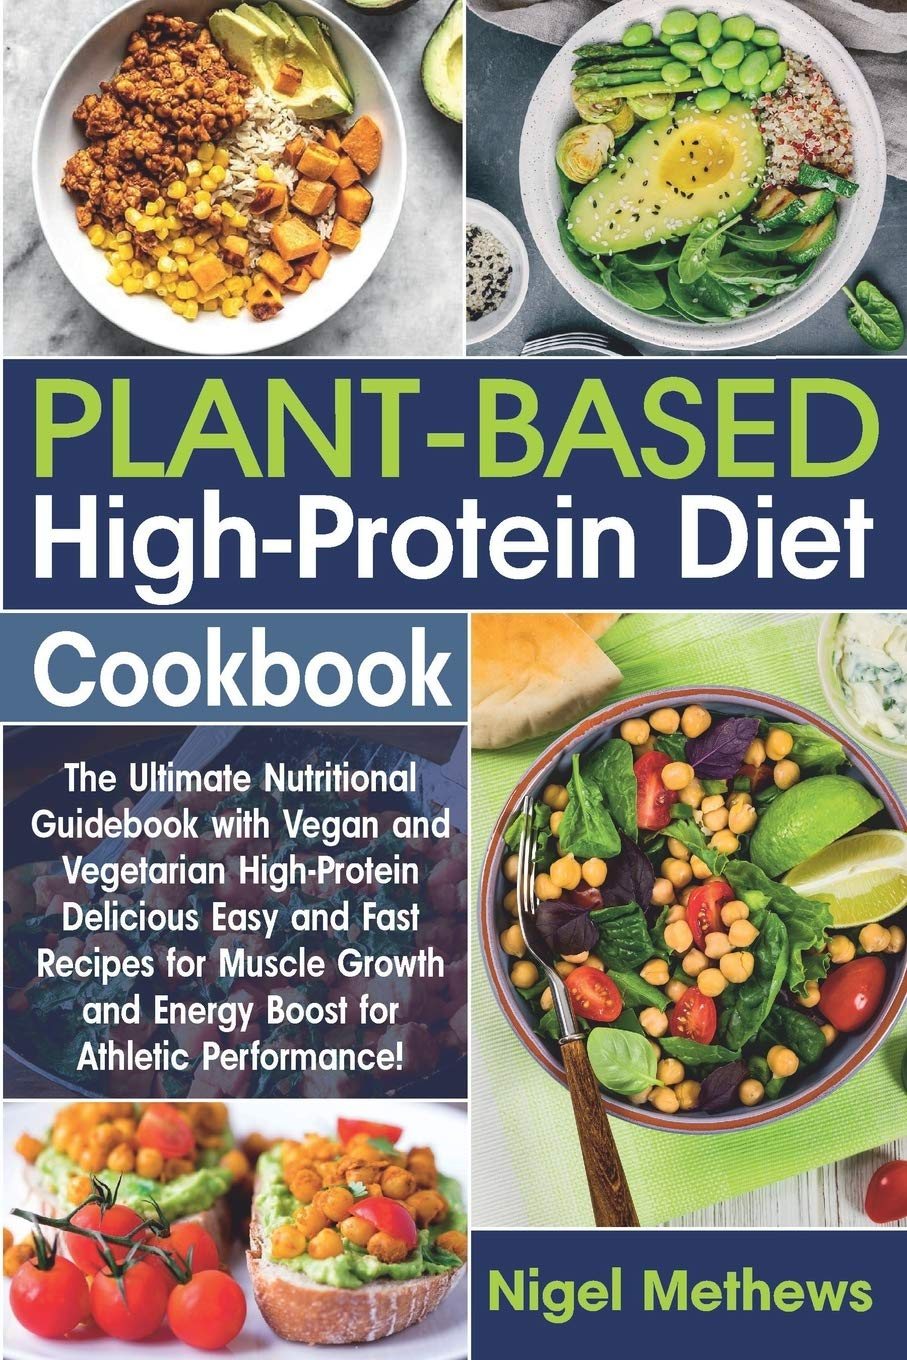 Plant-Based High-Protein Diet Cookbook: The Ultimate Nutritional Guidebook with Vegan and Vegetarian High-Protein Delicious Easy and Fast Recipes for Muscle Growth and Energy Boost for Athletic 1